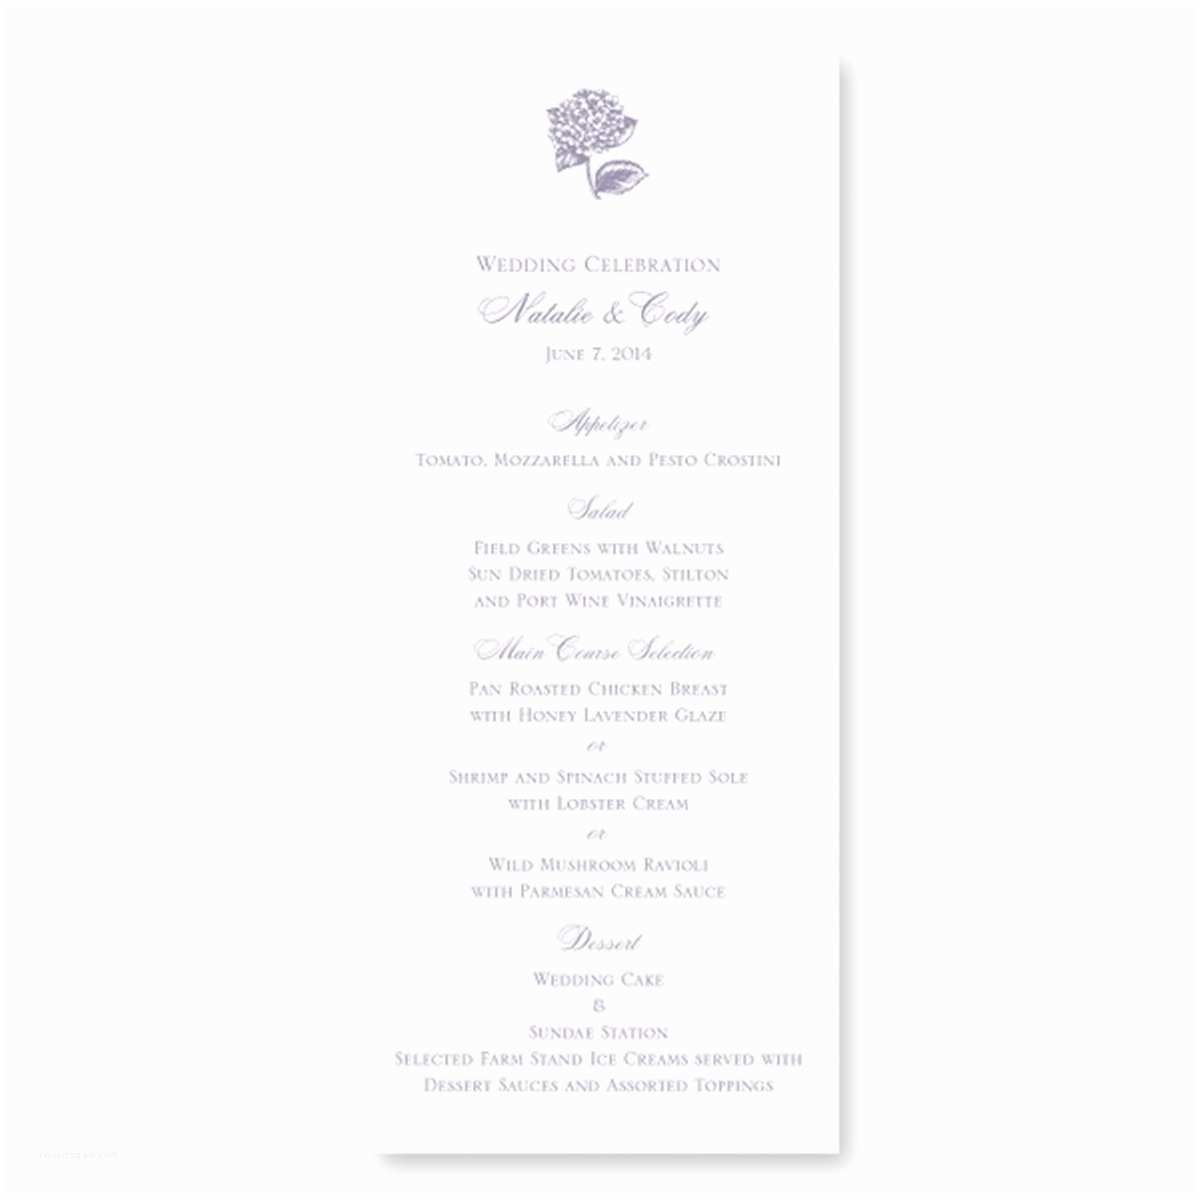 William Arthur Wedding Invitations Stationery Ireland